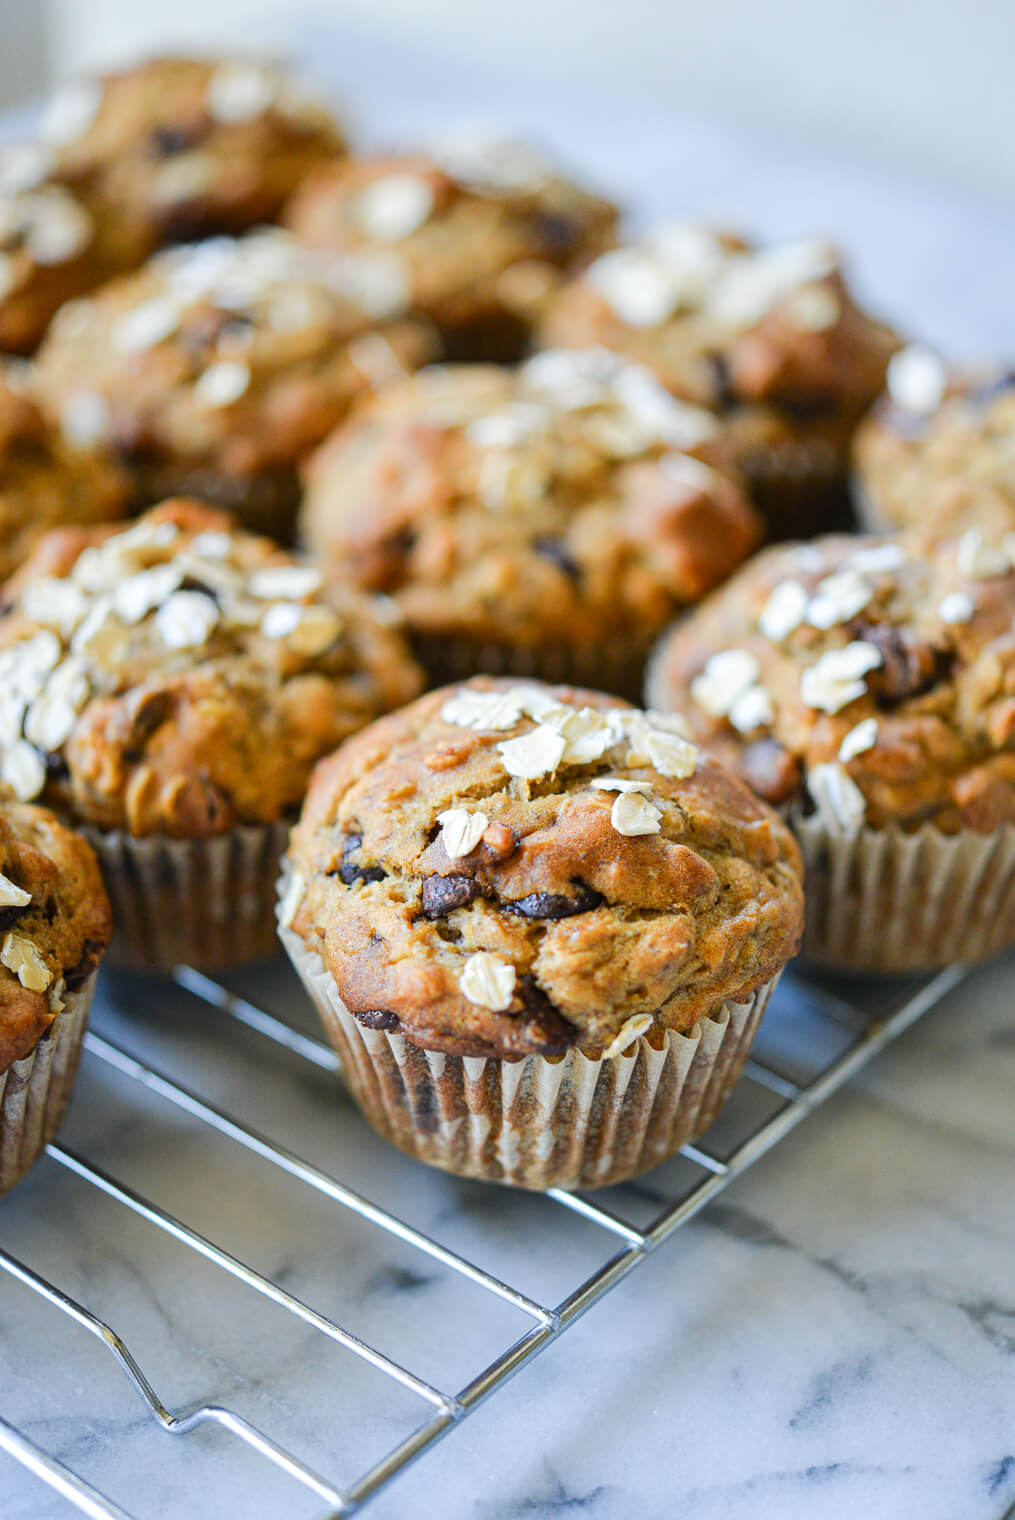 side angle view of chocolate chip banana oat muffins on a wire rack on a marble surface